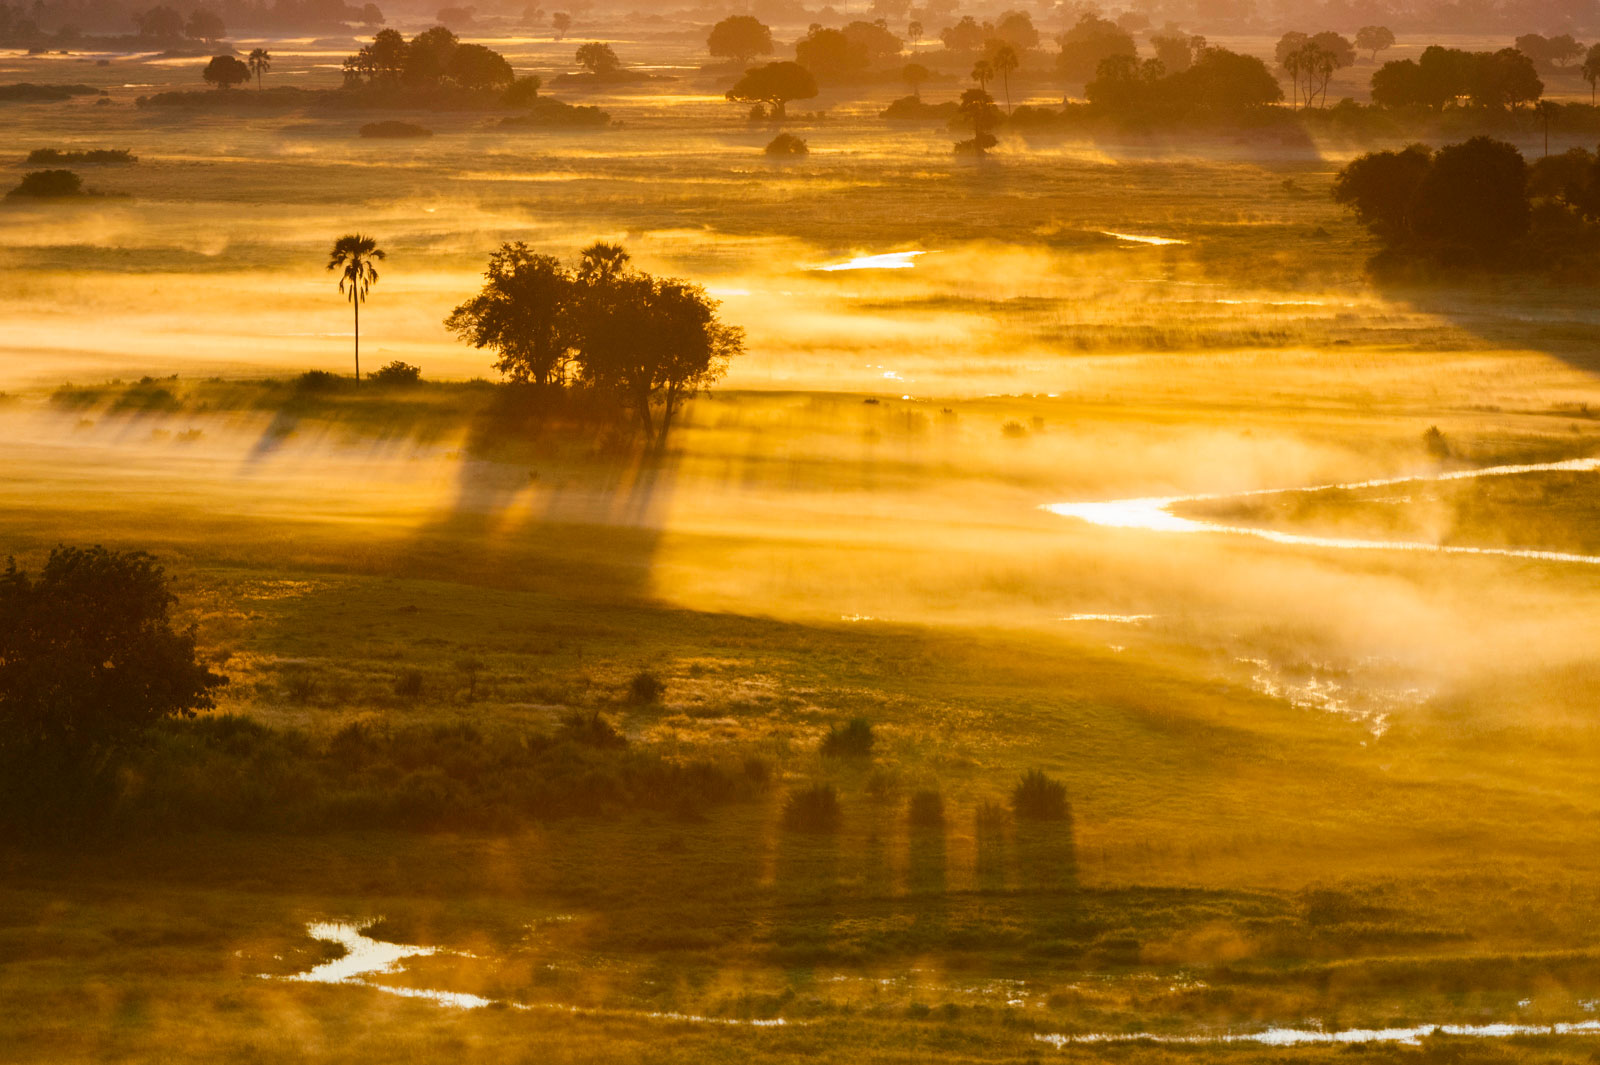 Mist at sunrise, Okavango Delta, Botswana